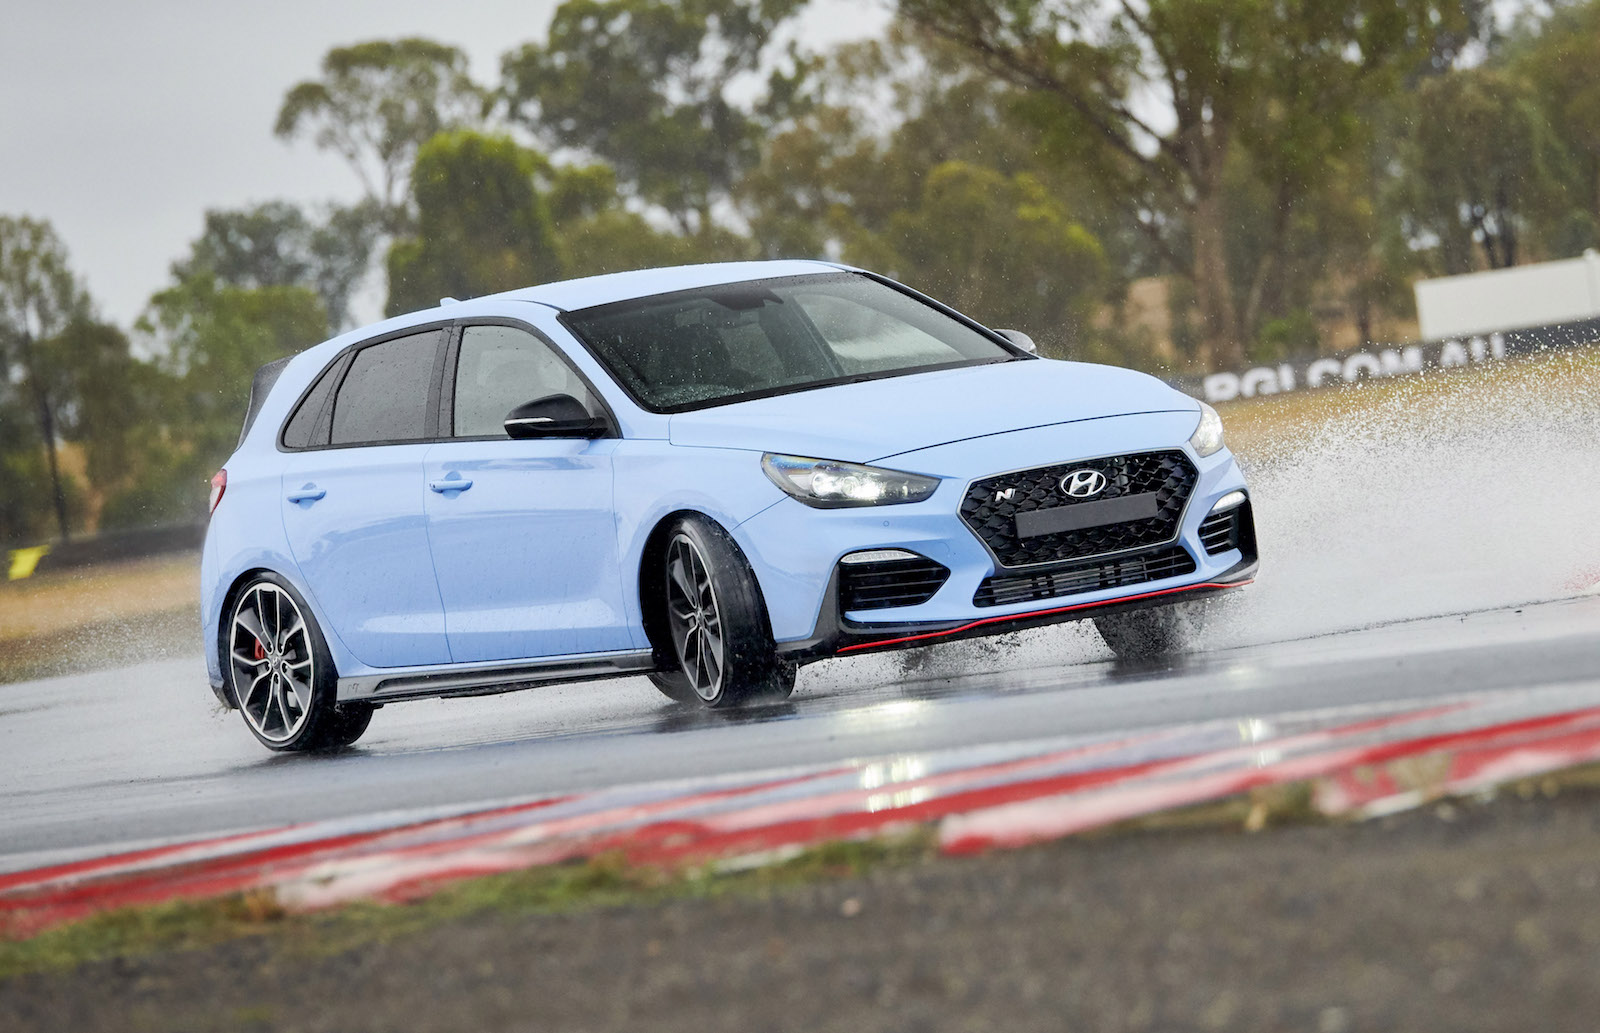 hyundai i30 n getting track ready accessories 8spd dct on the way performancedrive. Black Bedroom Furniture Sets. Home Design Ideas